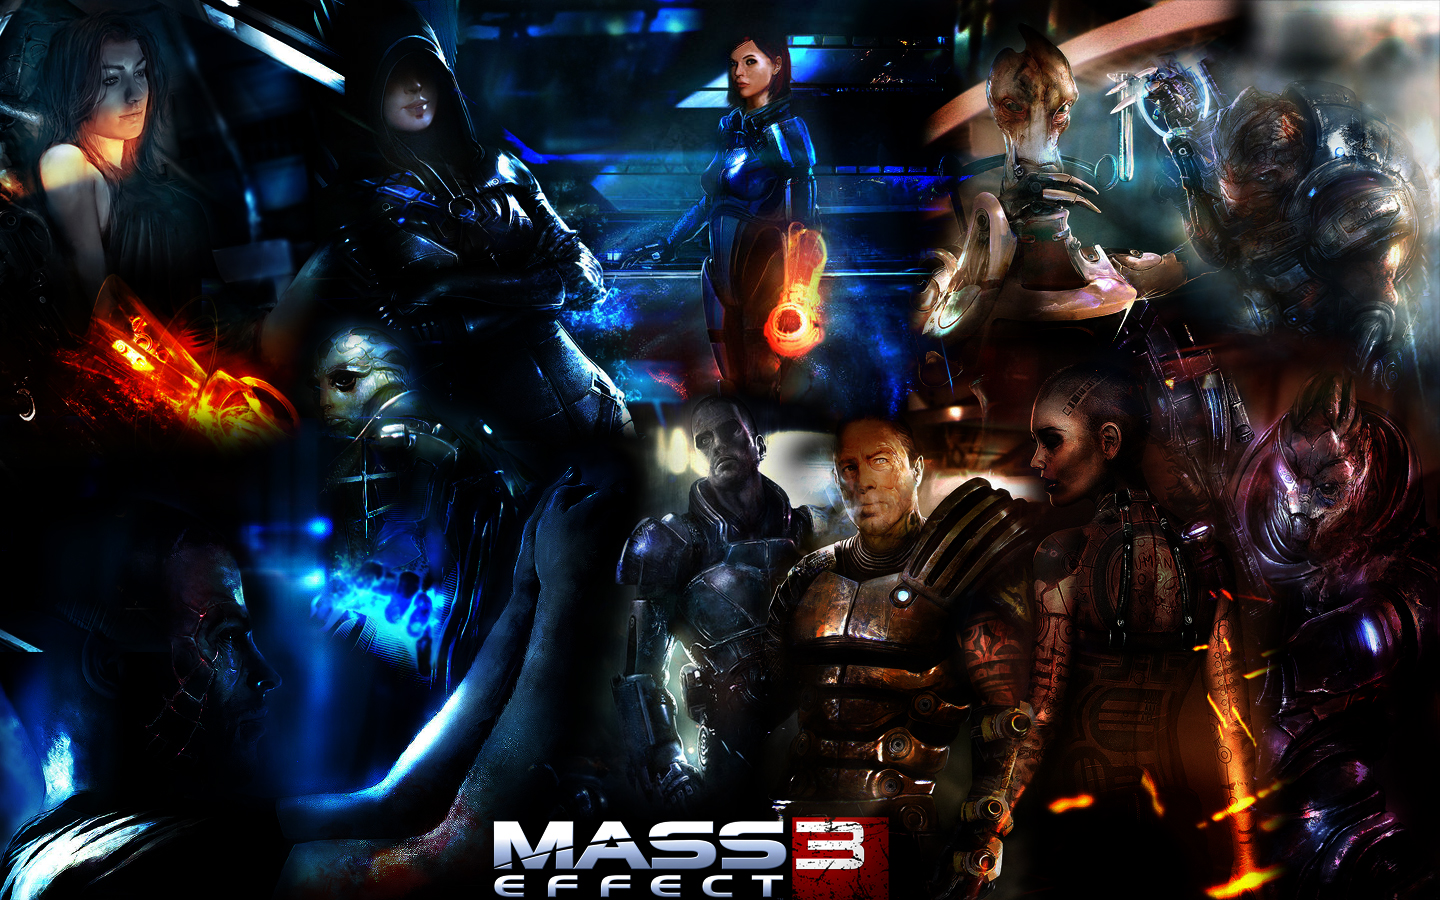 Mass Effect 3 Wallpaper By Trolldrill On Deviantart